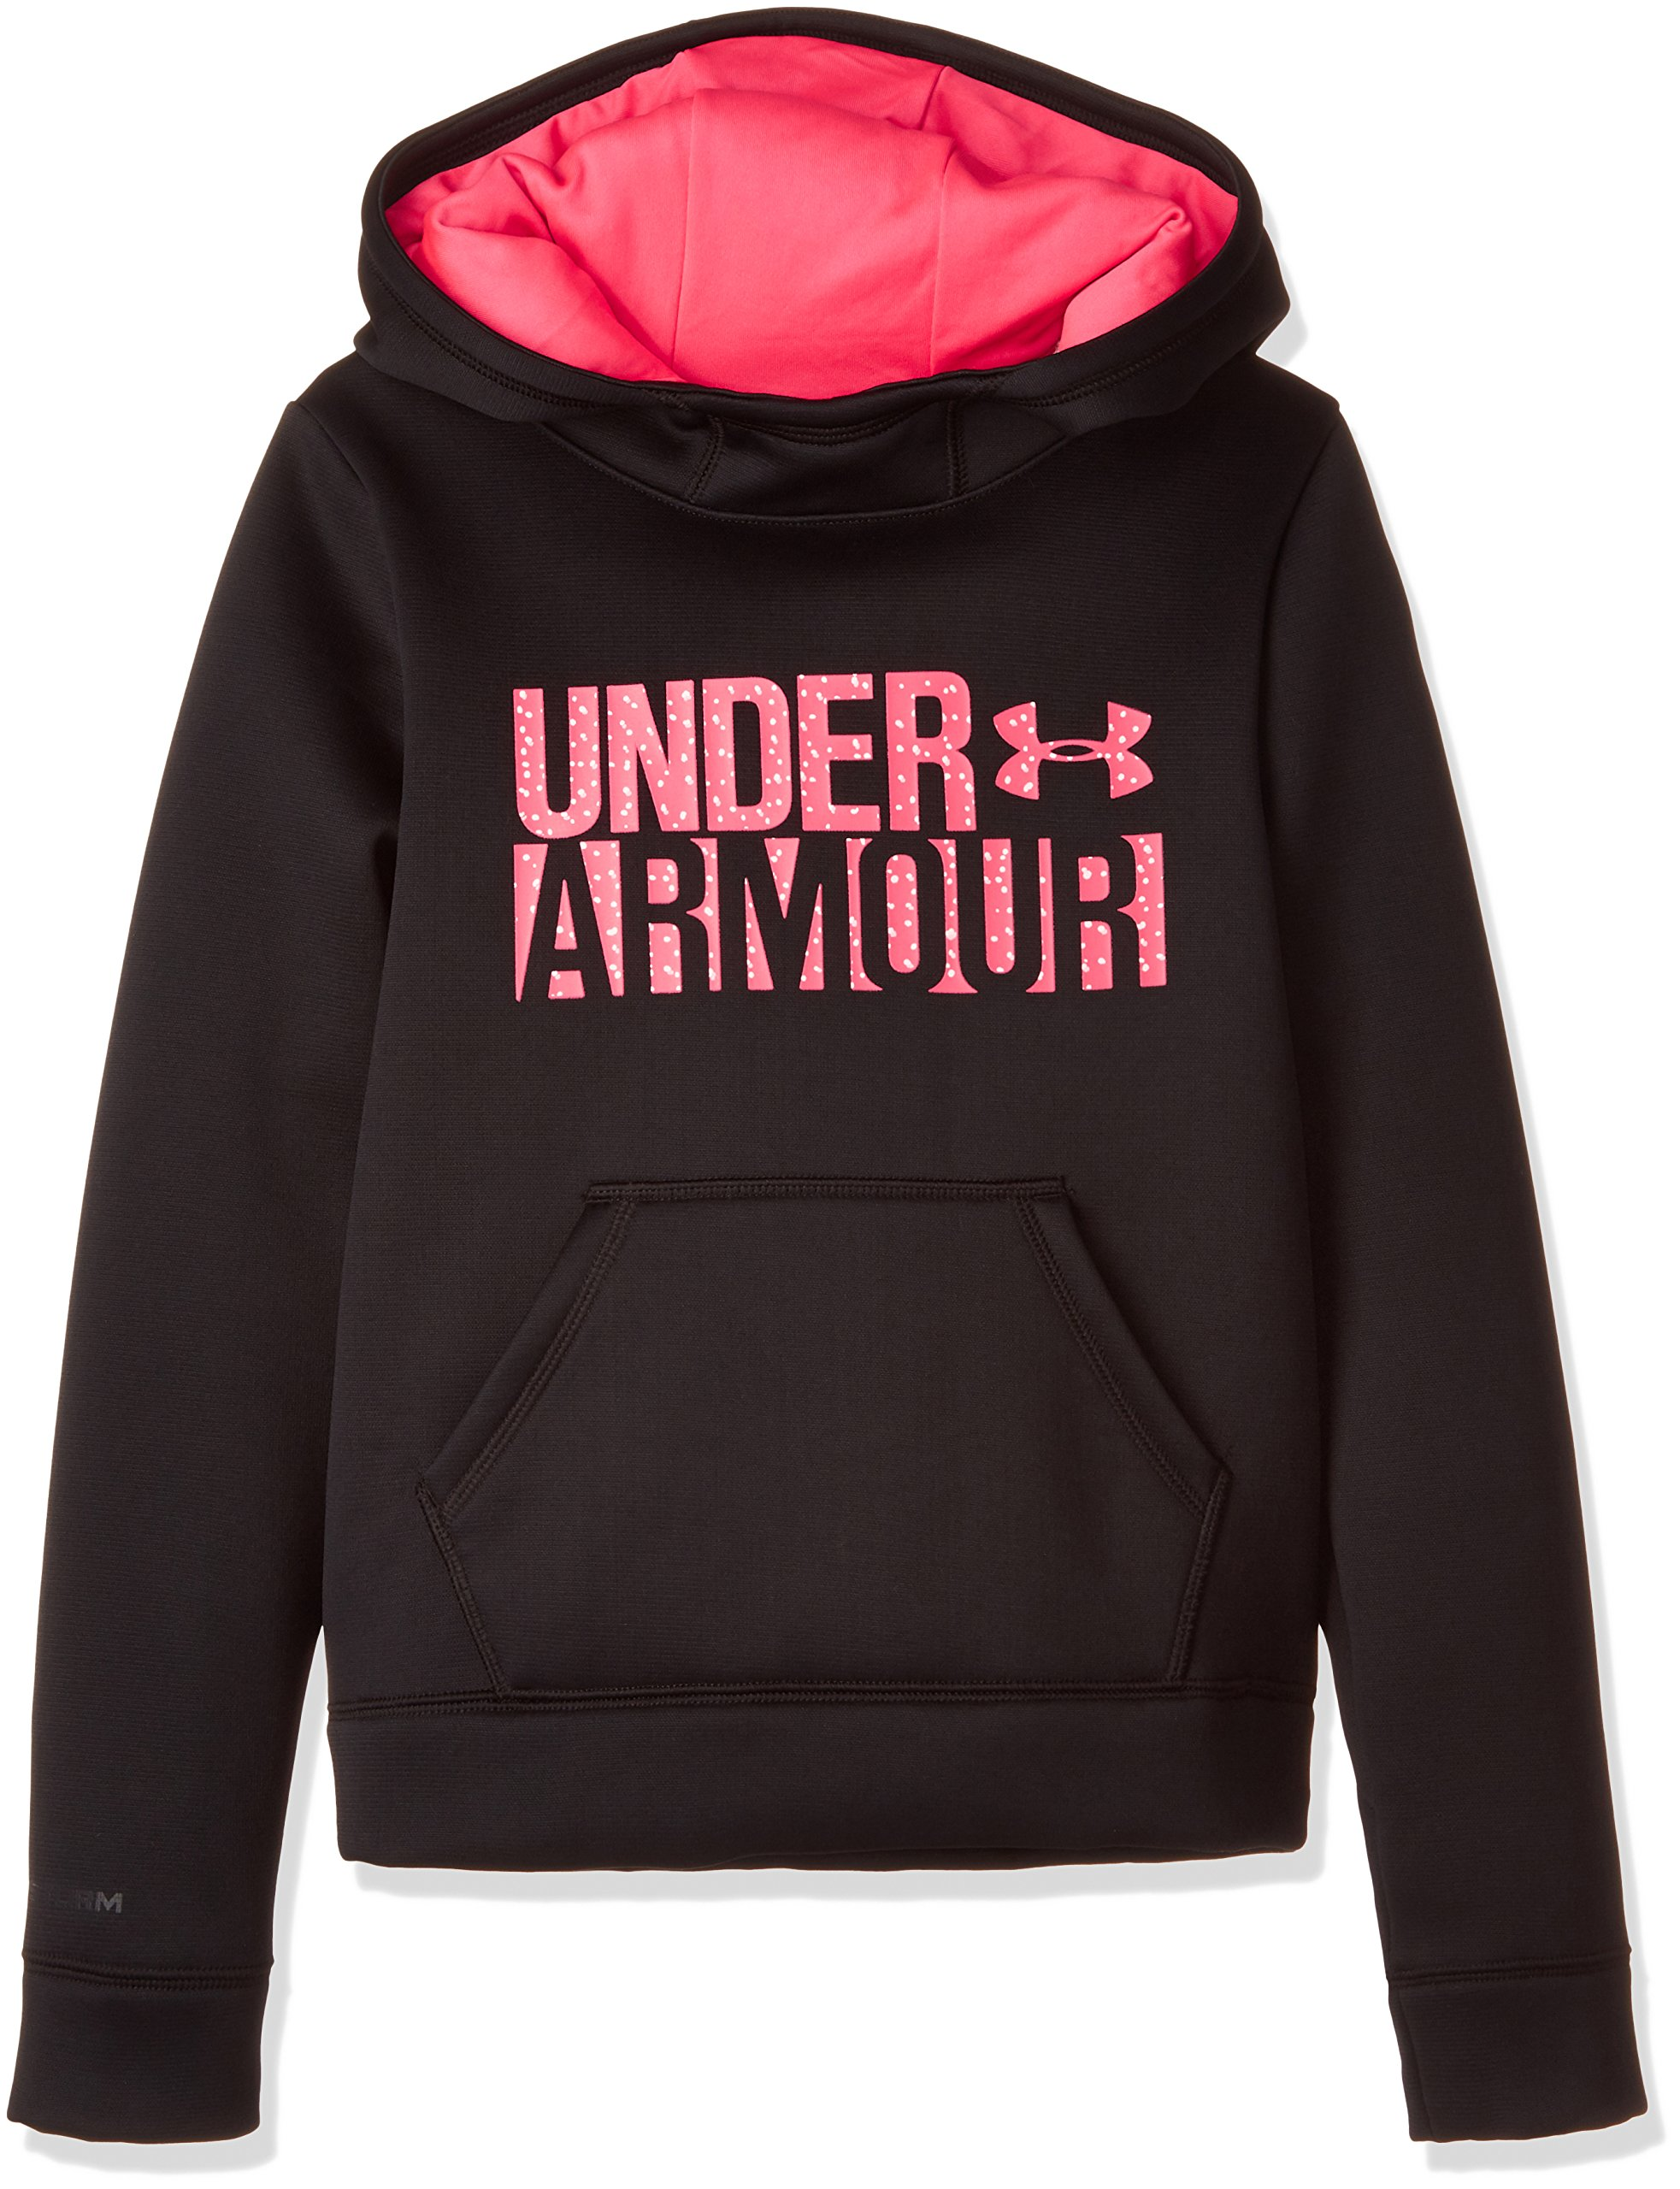 Under Armour Armour Fleece Wordmark Hoodie - Girl's by Under Armour (Image #1)